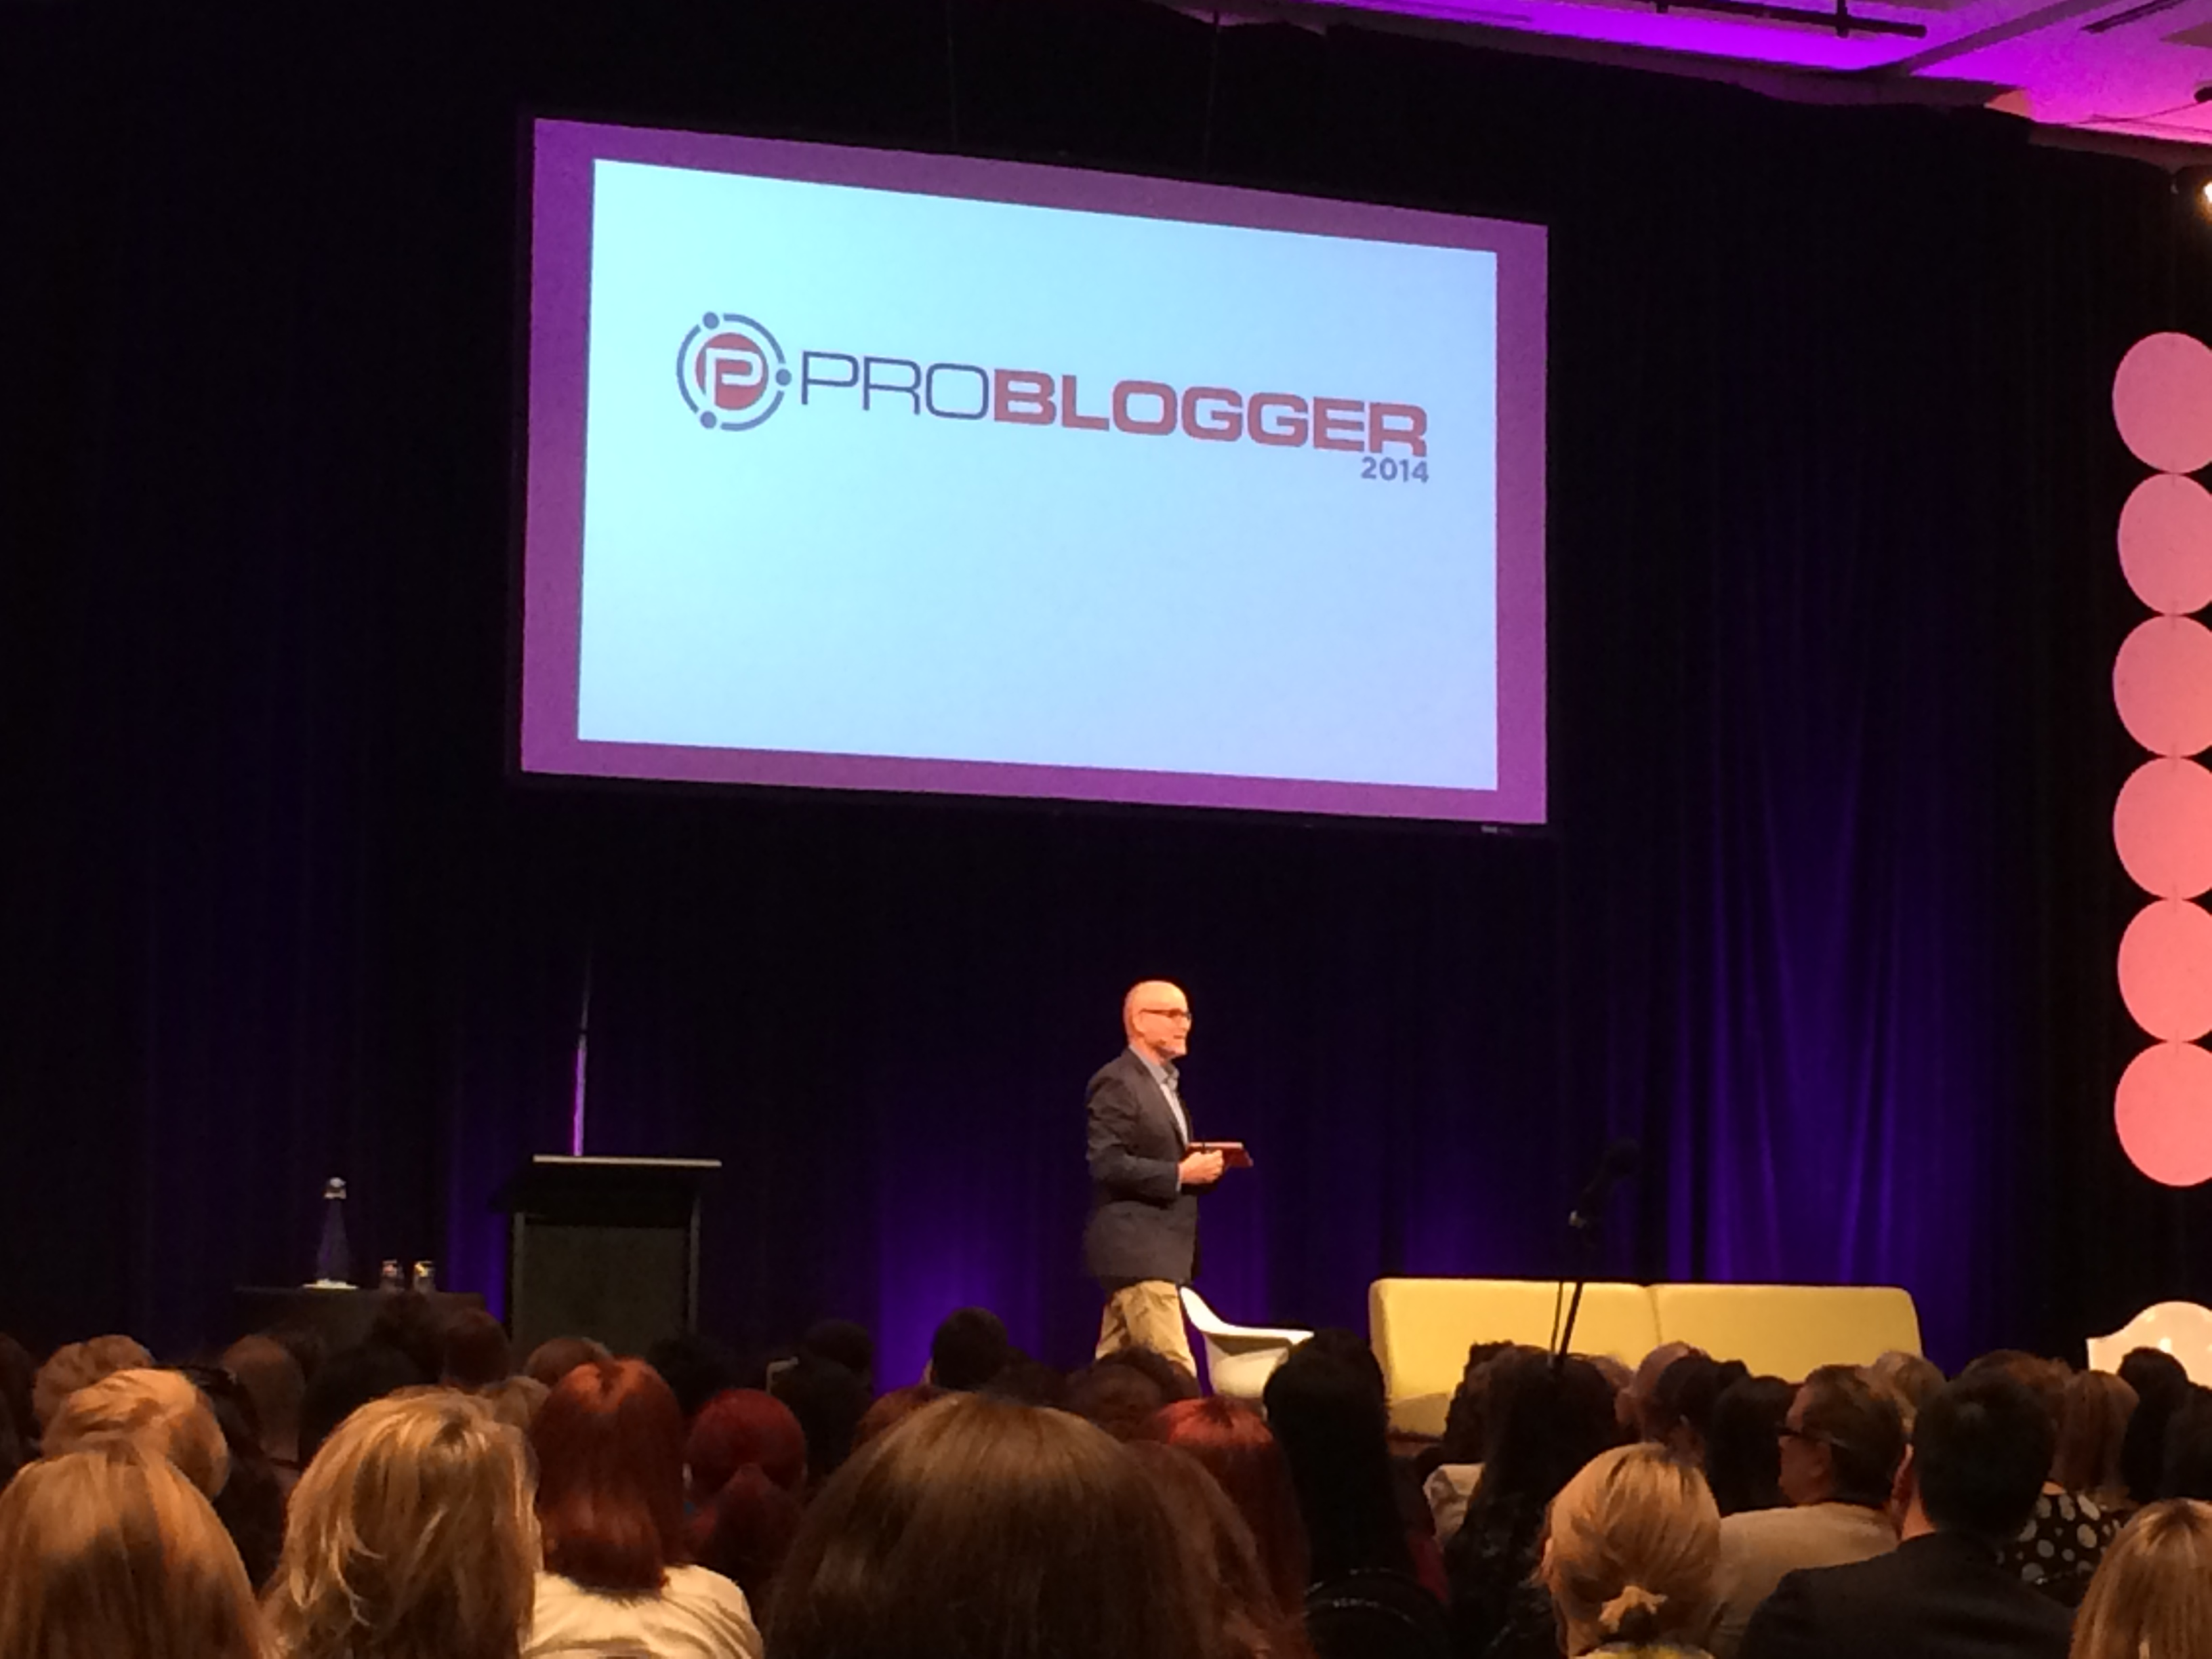 Problogger: An Intro from Darren Rowse